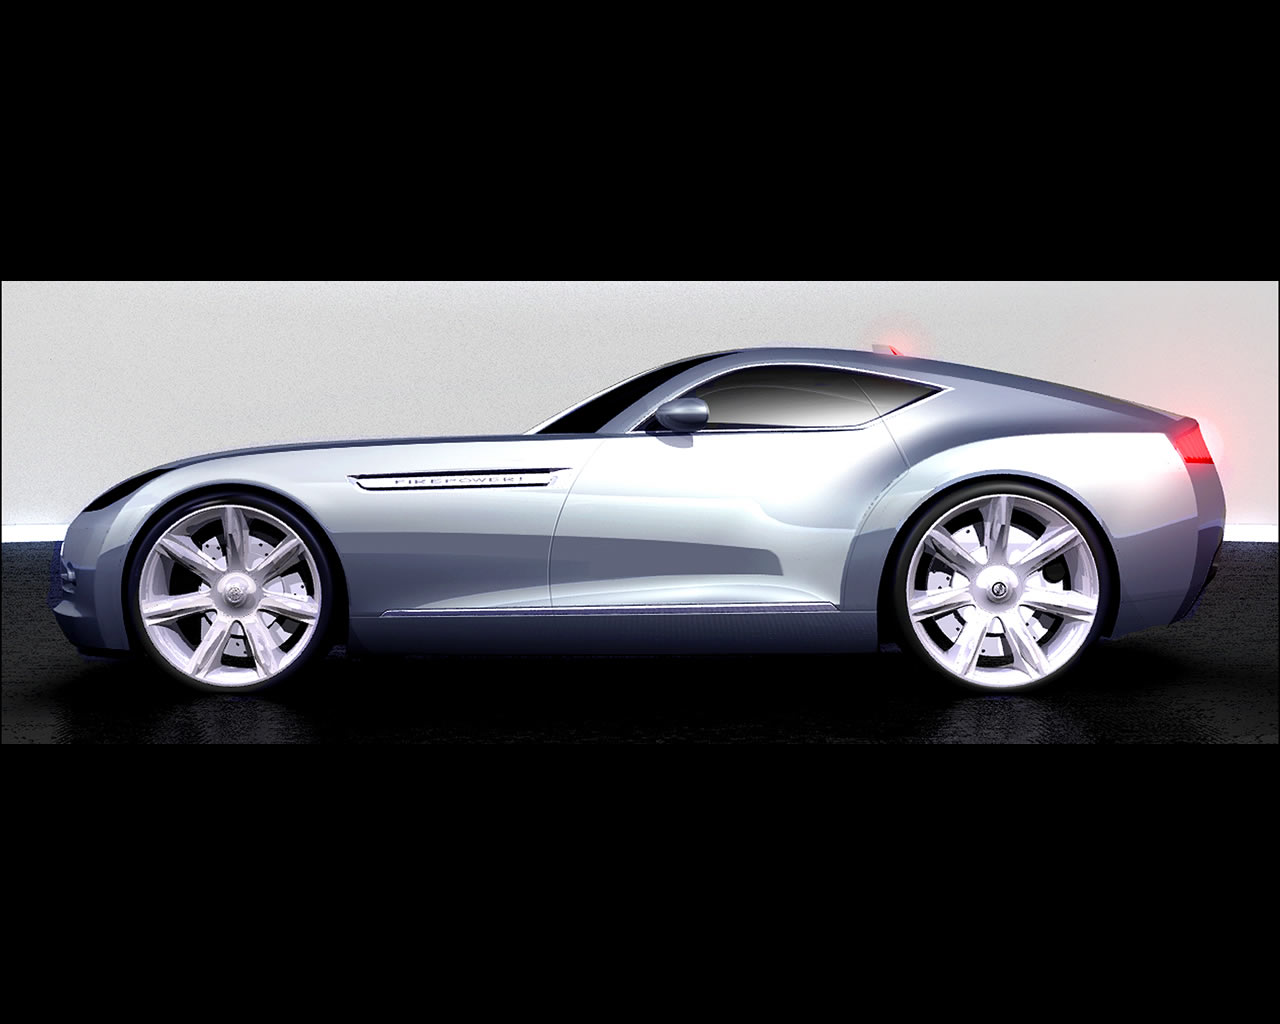 2005 Chrysler Firepower Concept - Car Pictures, Photos, Spy Shoot ...